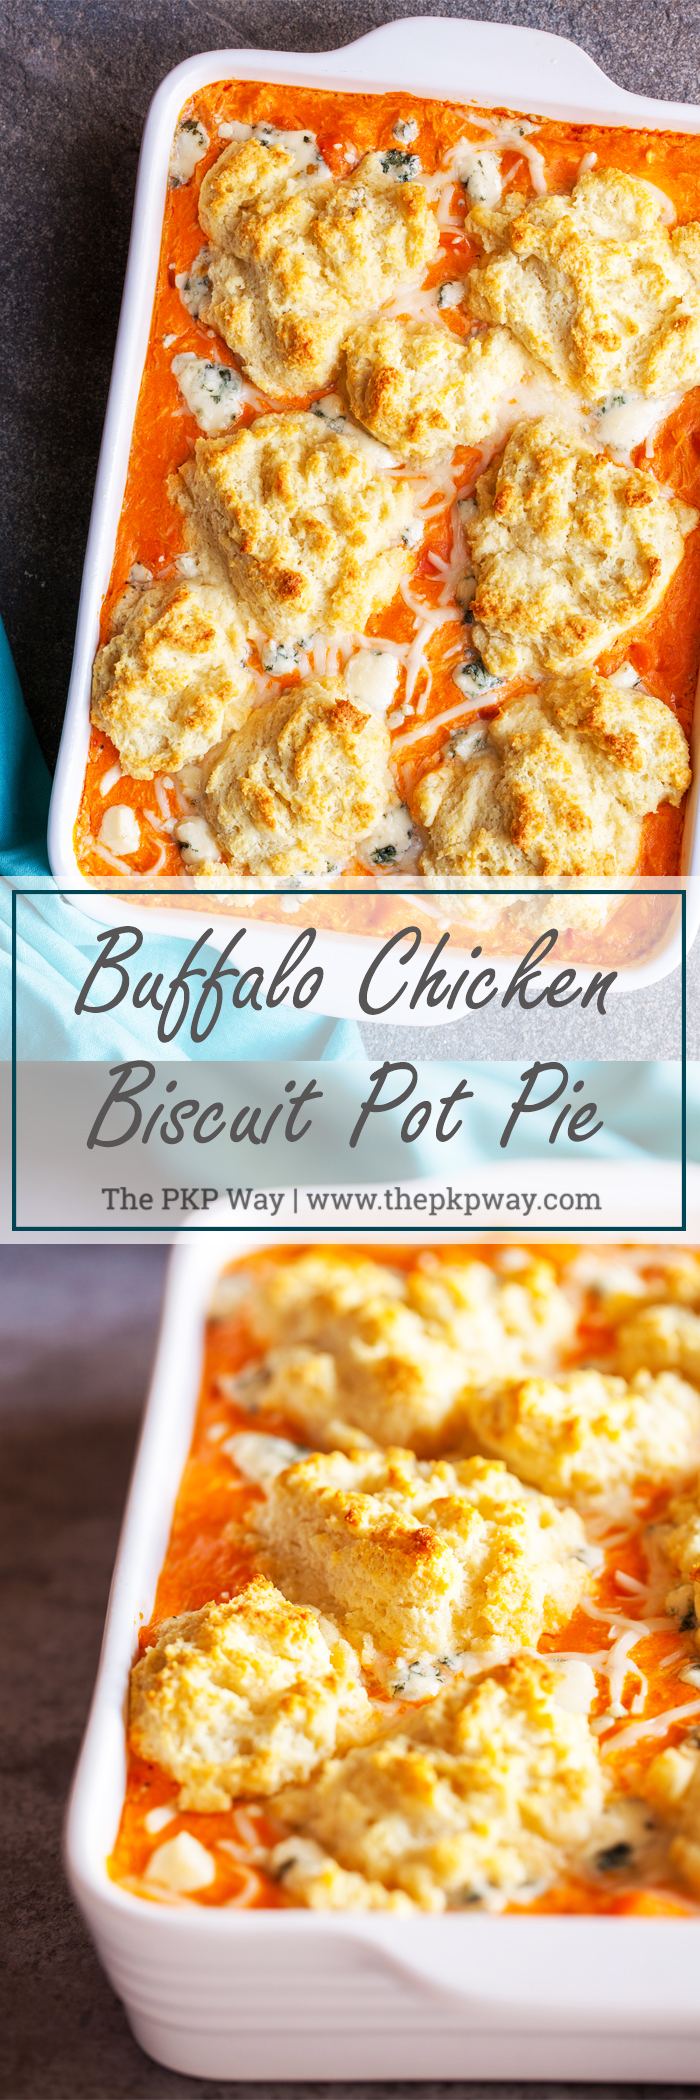 Buffalo Chicken Biscuit Pot Pie All The Deliciousness Of Chicken Pot Pie Buffalo Wings